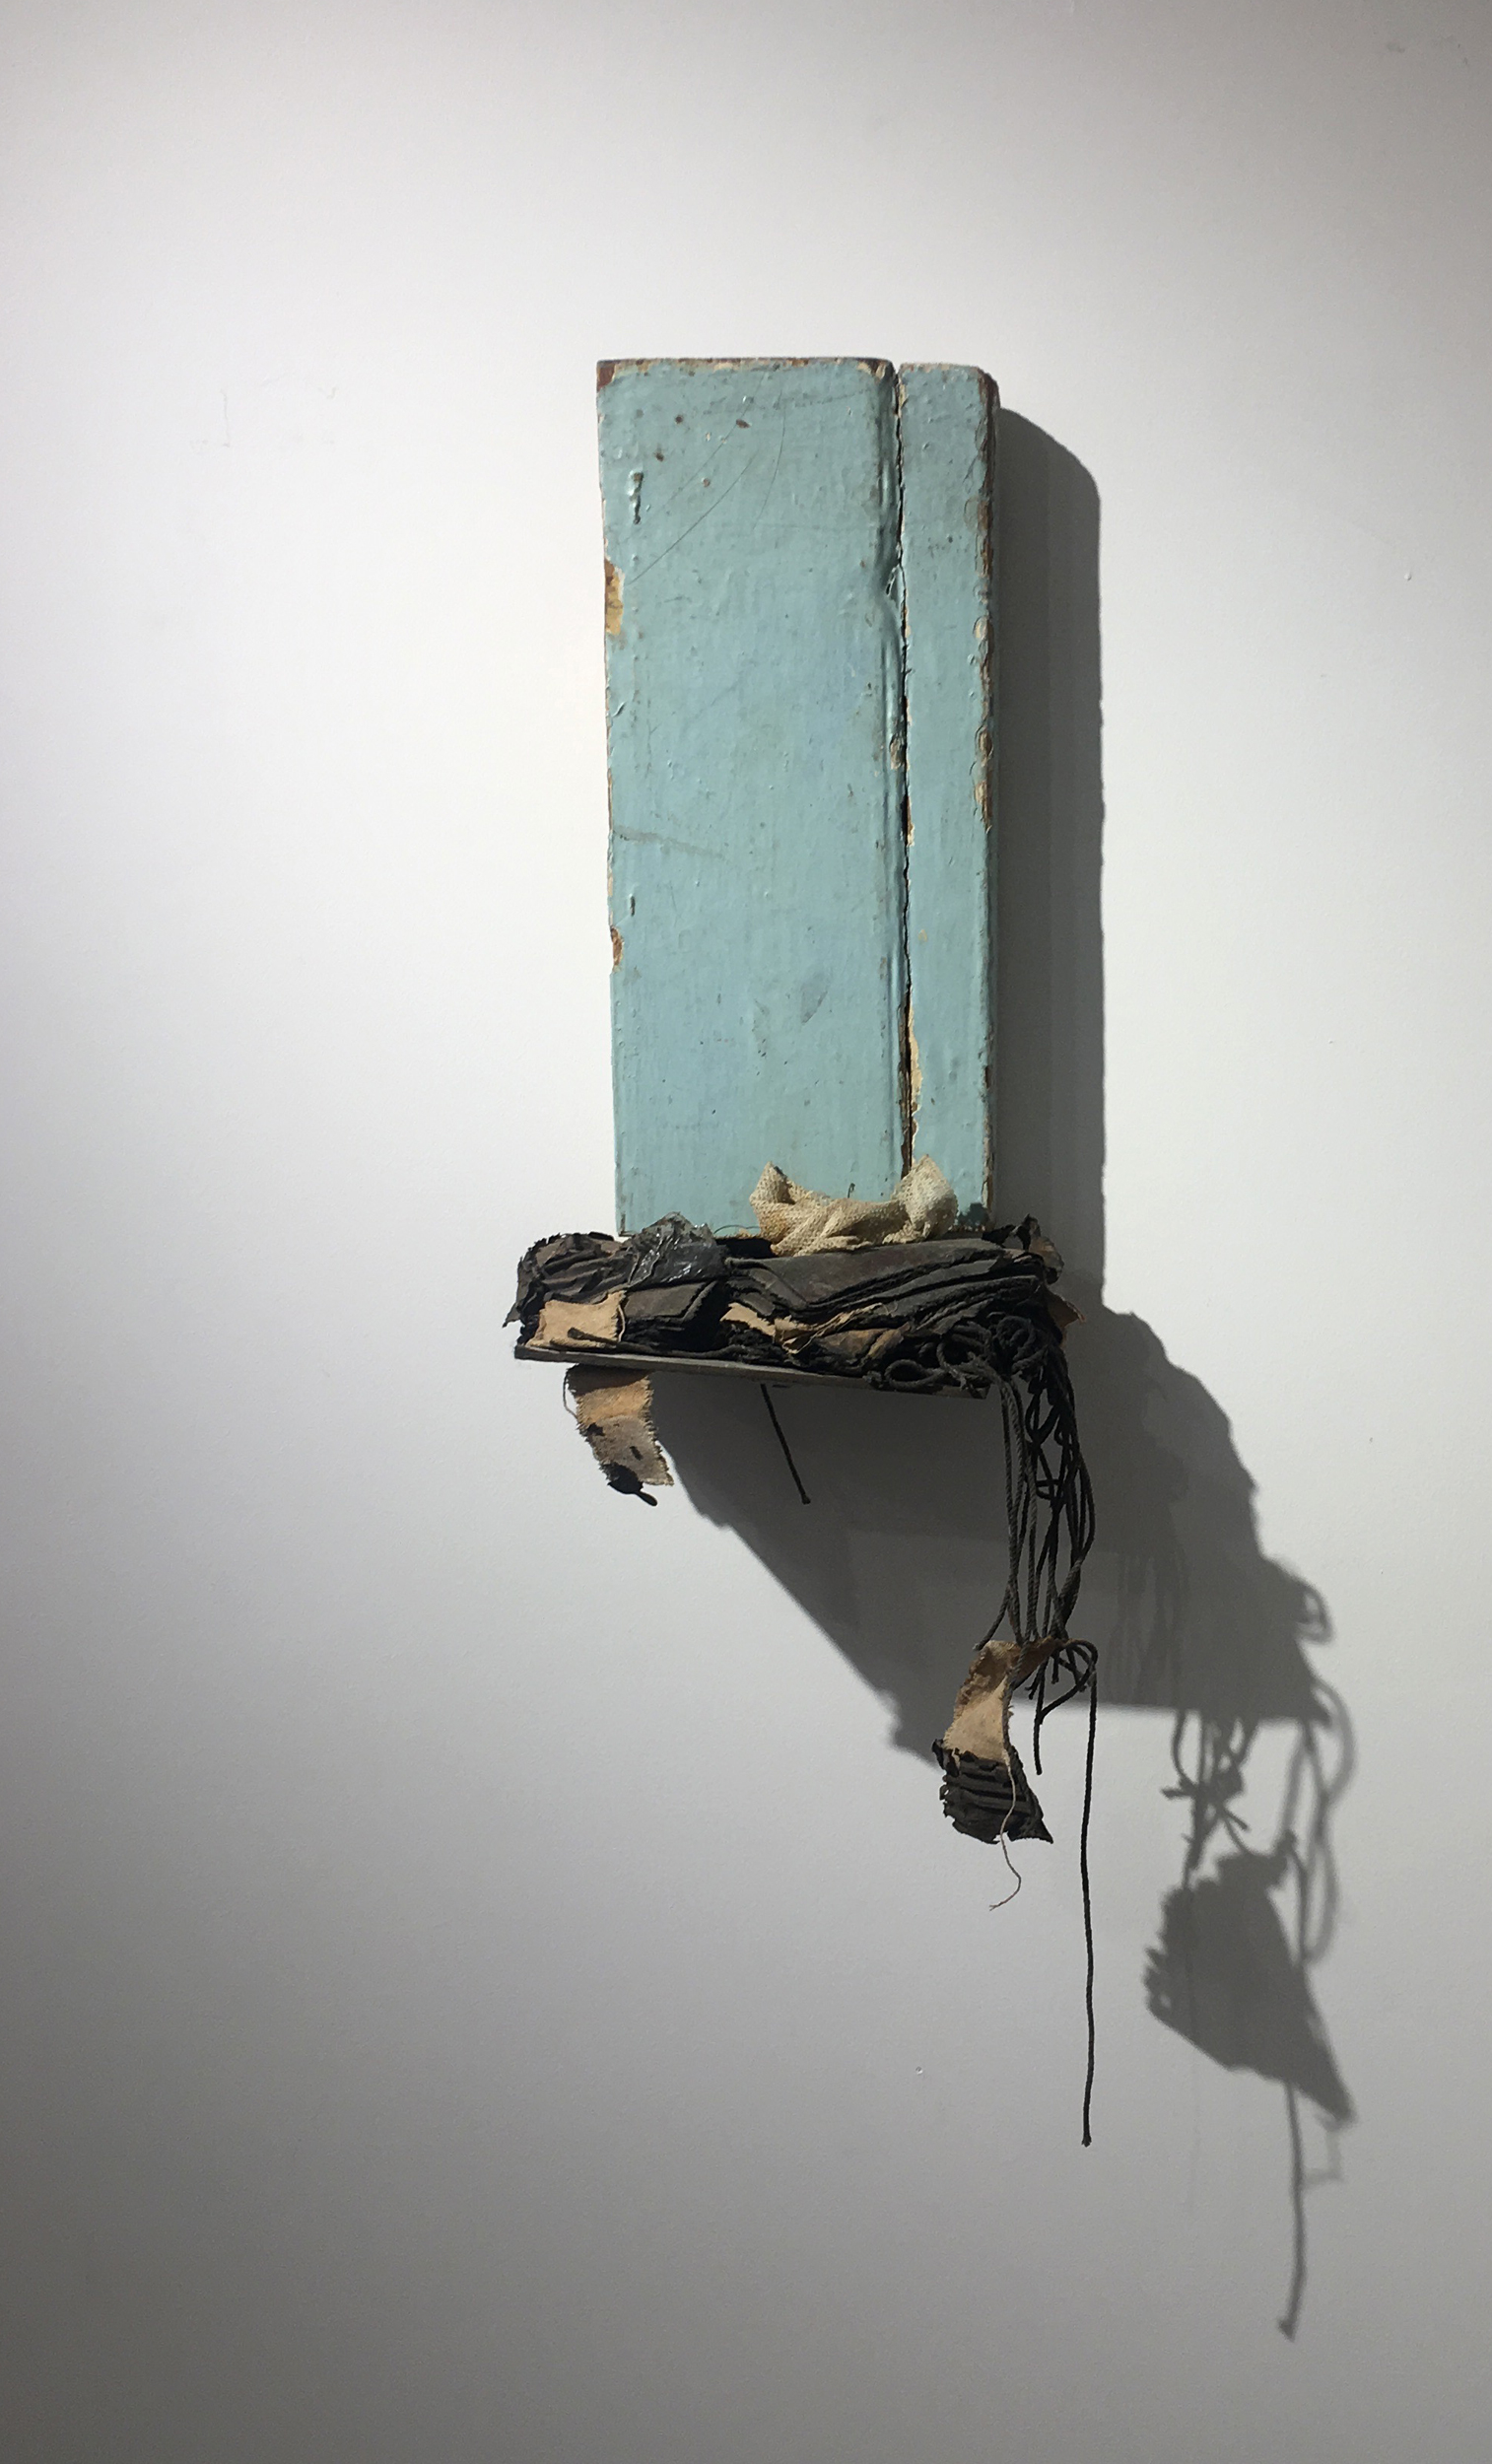 Leonardo Drew  Number 69 , 1998 Painted wood, fabric, paper, and metal construction 28.5 x 9.25 x 5.625 inches